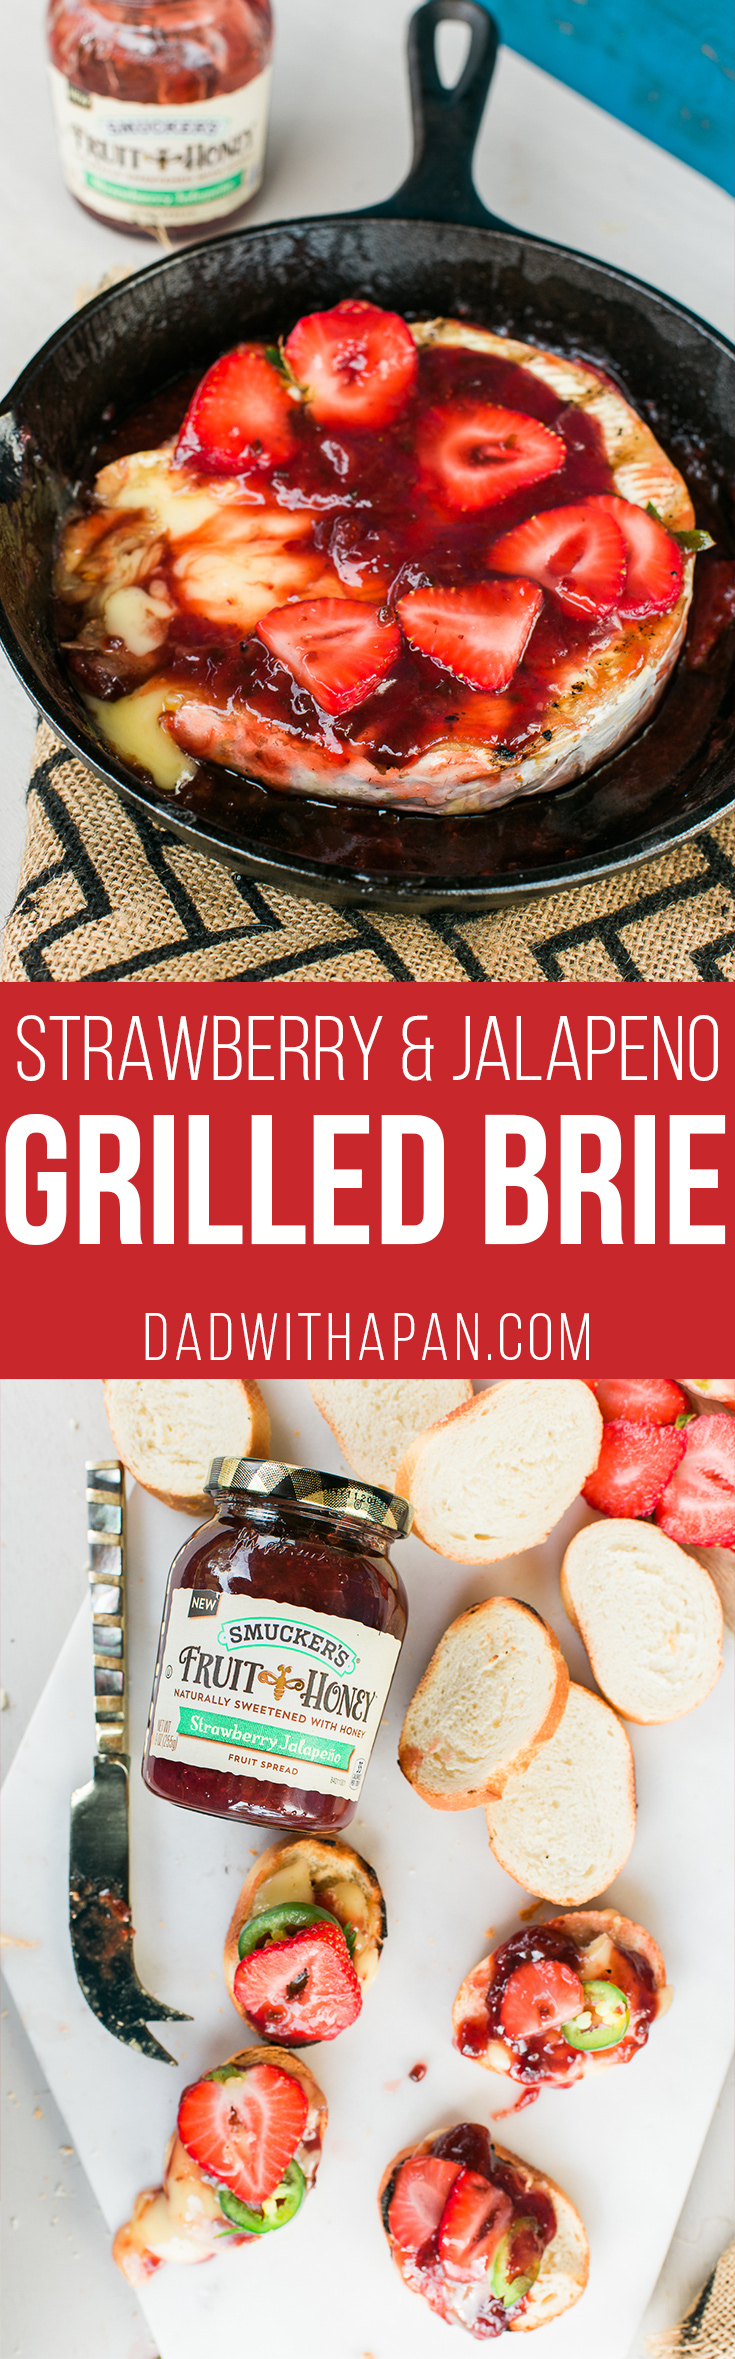 Grilled brie that will make you a hero at home. Grilled with Strawberry and Jalapeno spread makes for a sweet savory and spicy appetizer everyone will love!